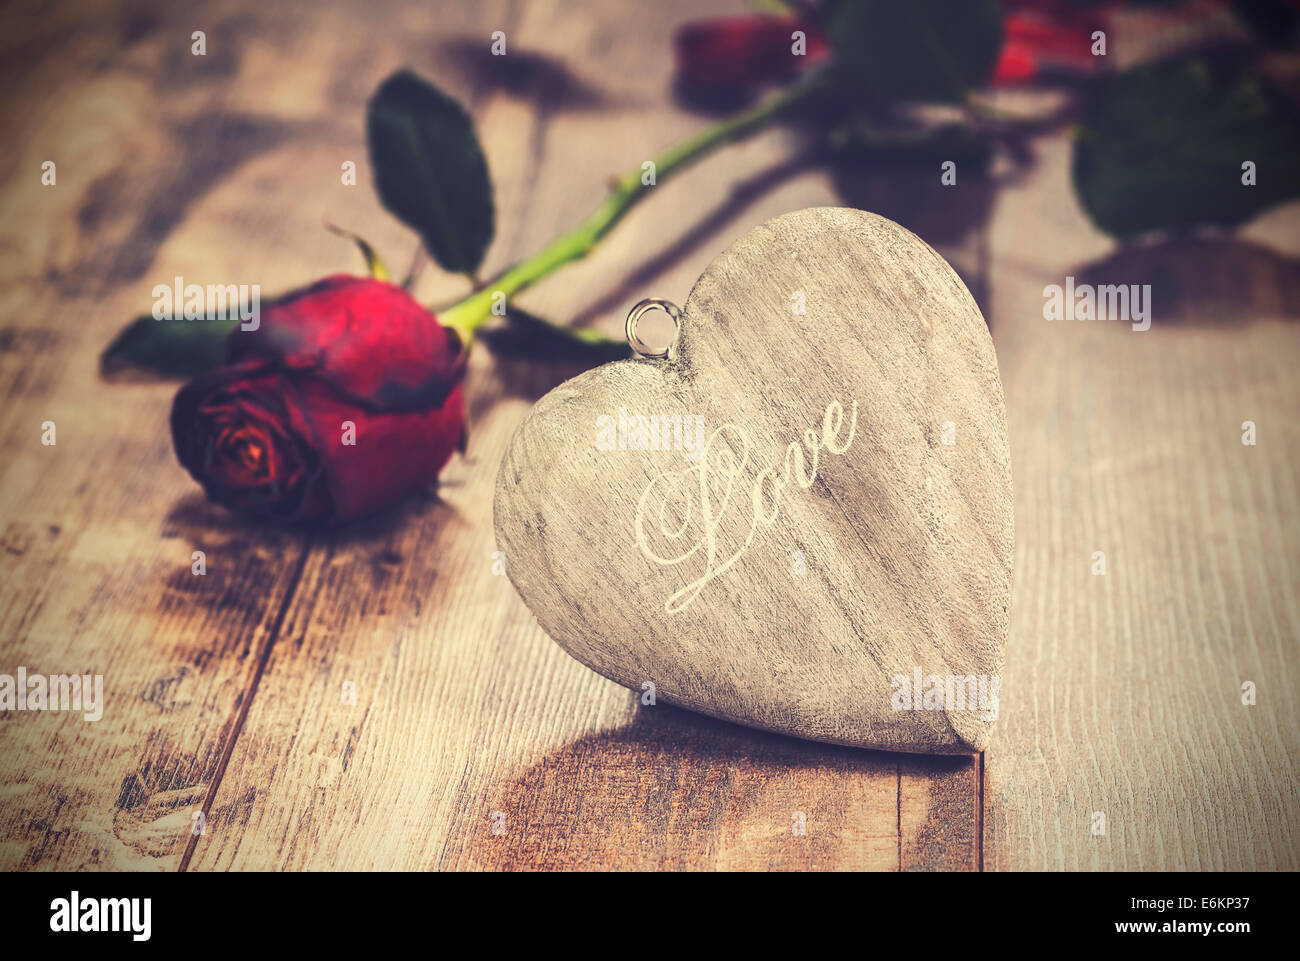 Vintage picture of heart on a wooden background with red rose. Valentine's day symbol. - Stock Image